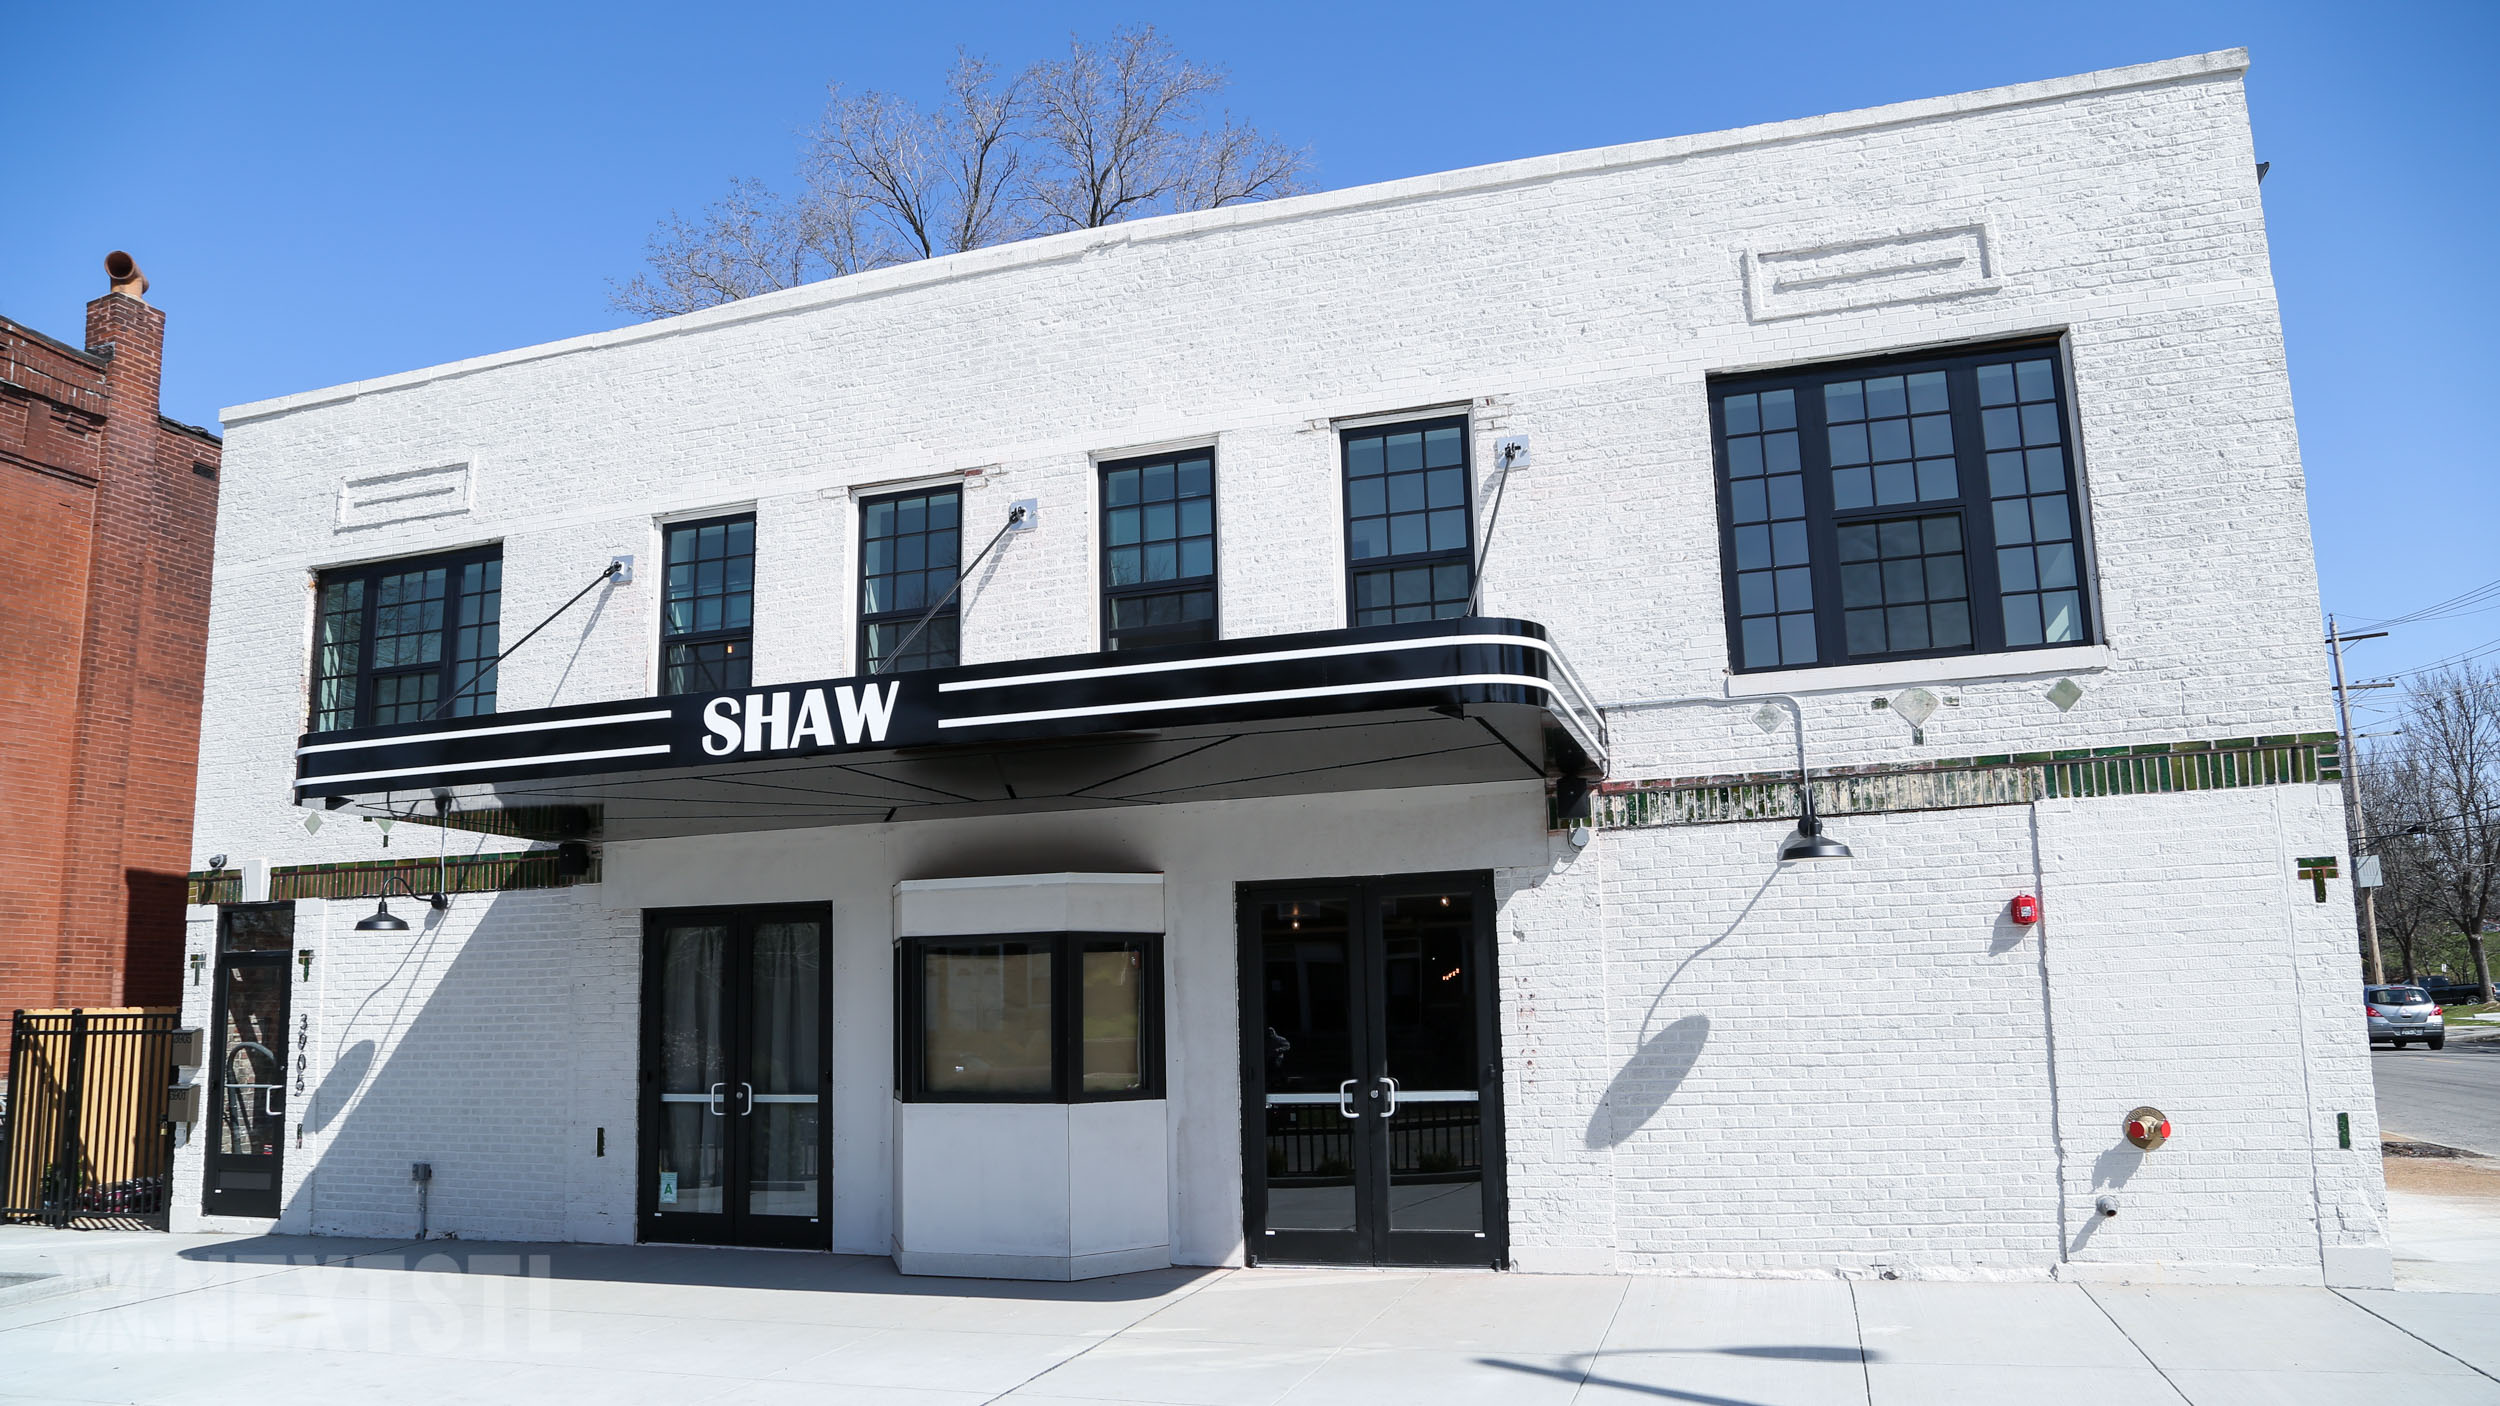 First Look: Renovated Shaw Theatre Becomes Wild Carrot